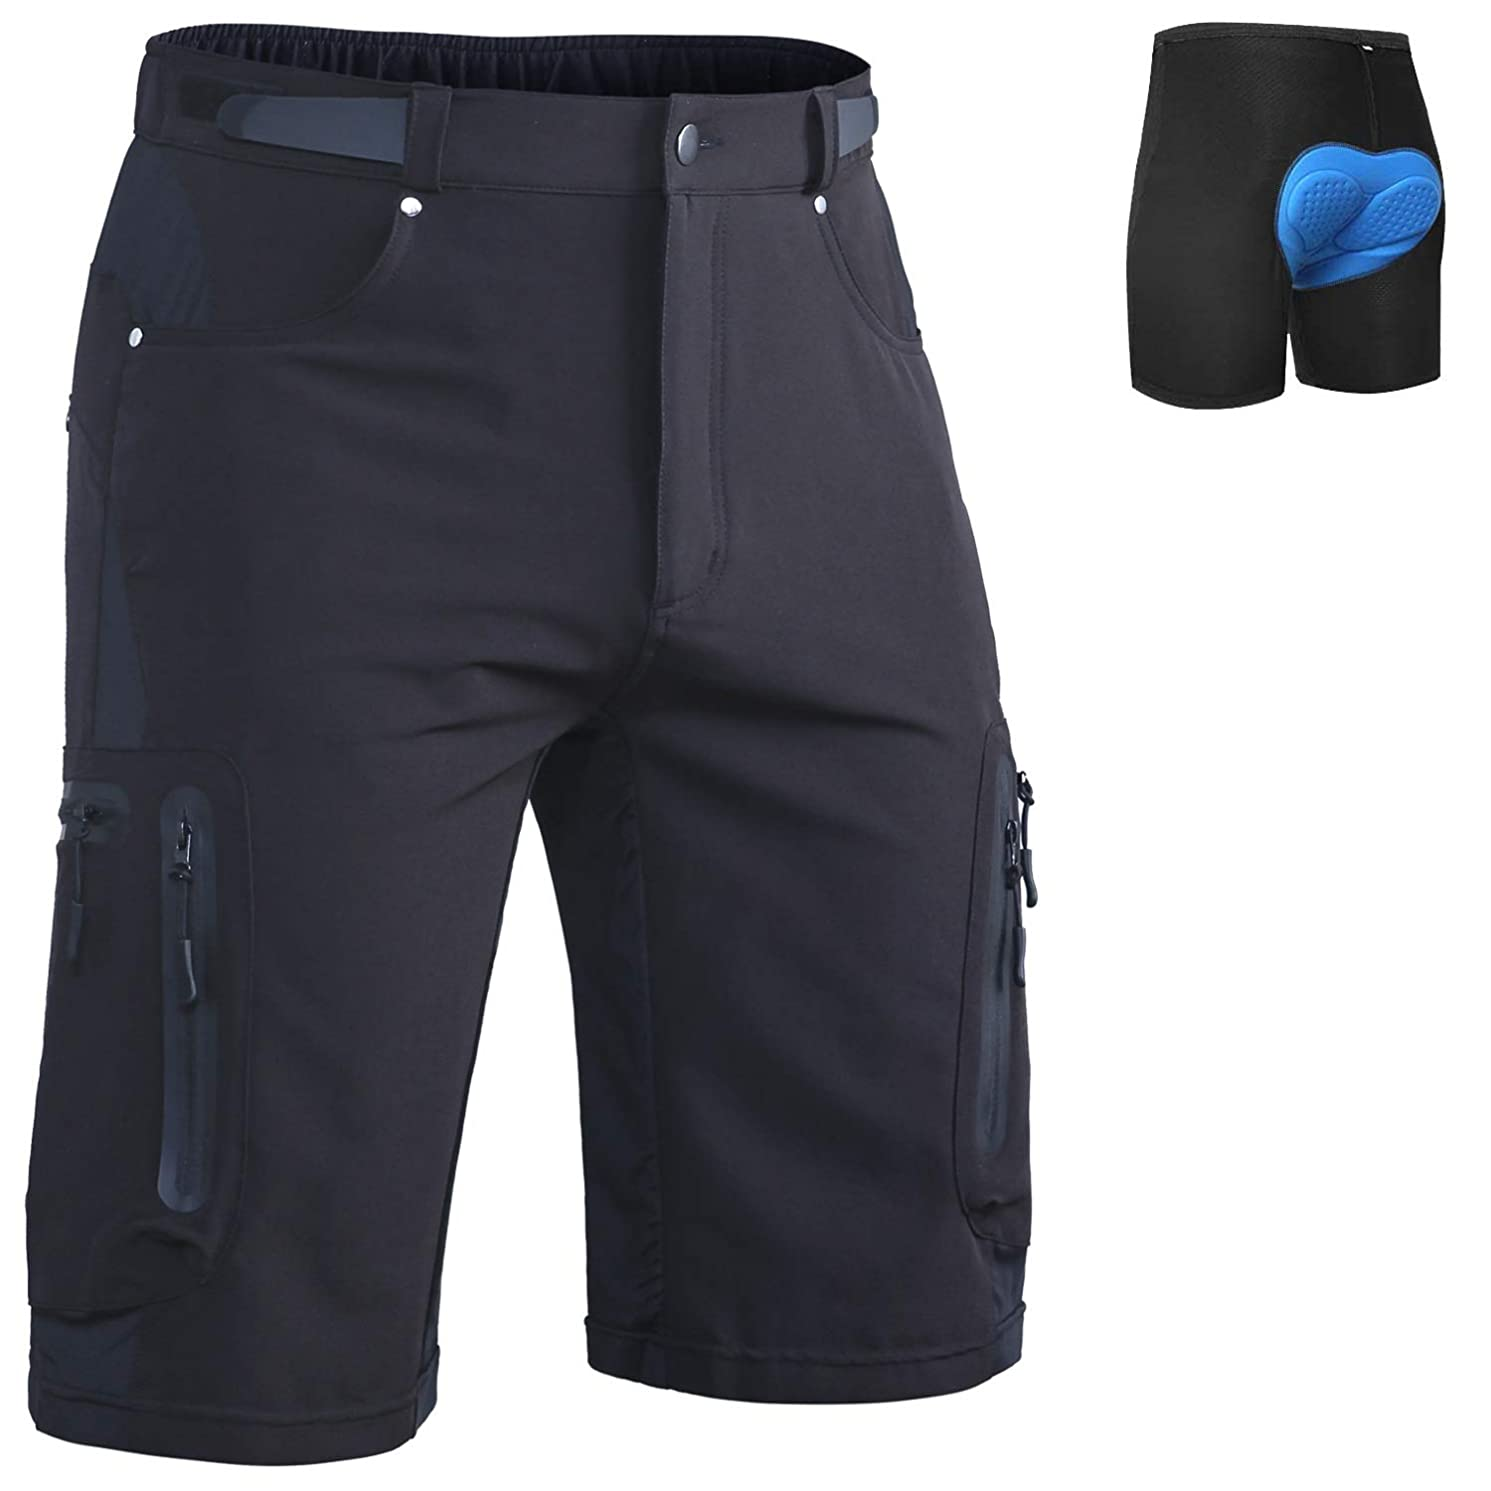 Ally Men's Cycling Shorts Loose-Fit 4D Padded Bike Bicycle MTB Mountain Bike Shorts, 7 Pockets, Removable Liner